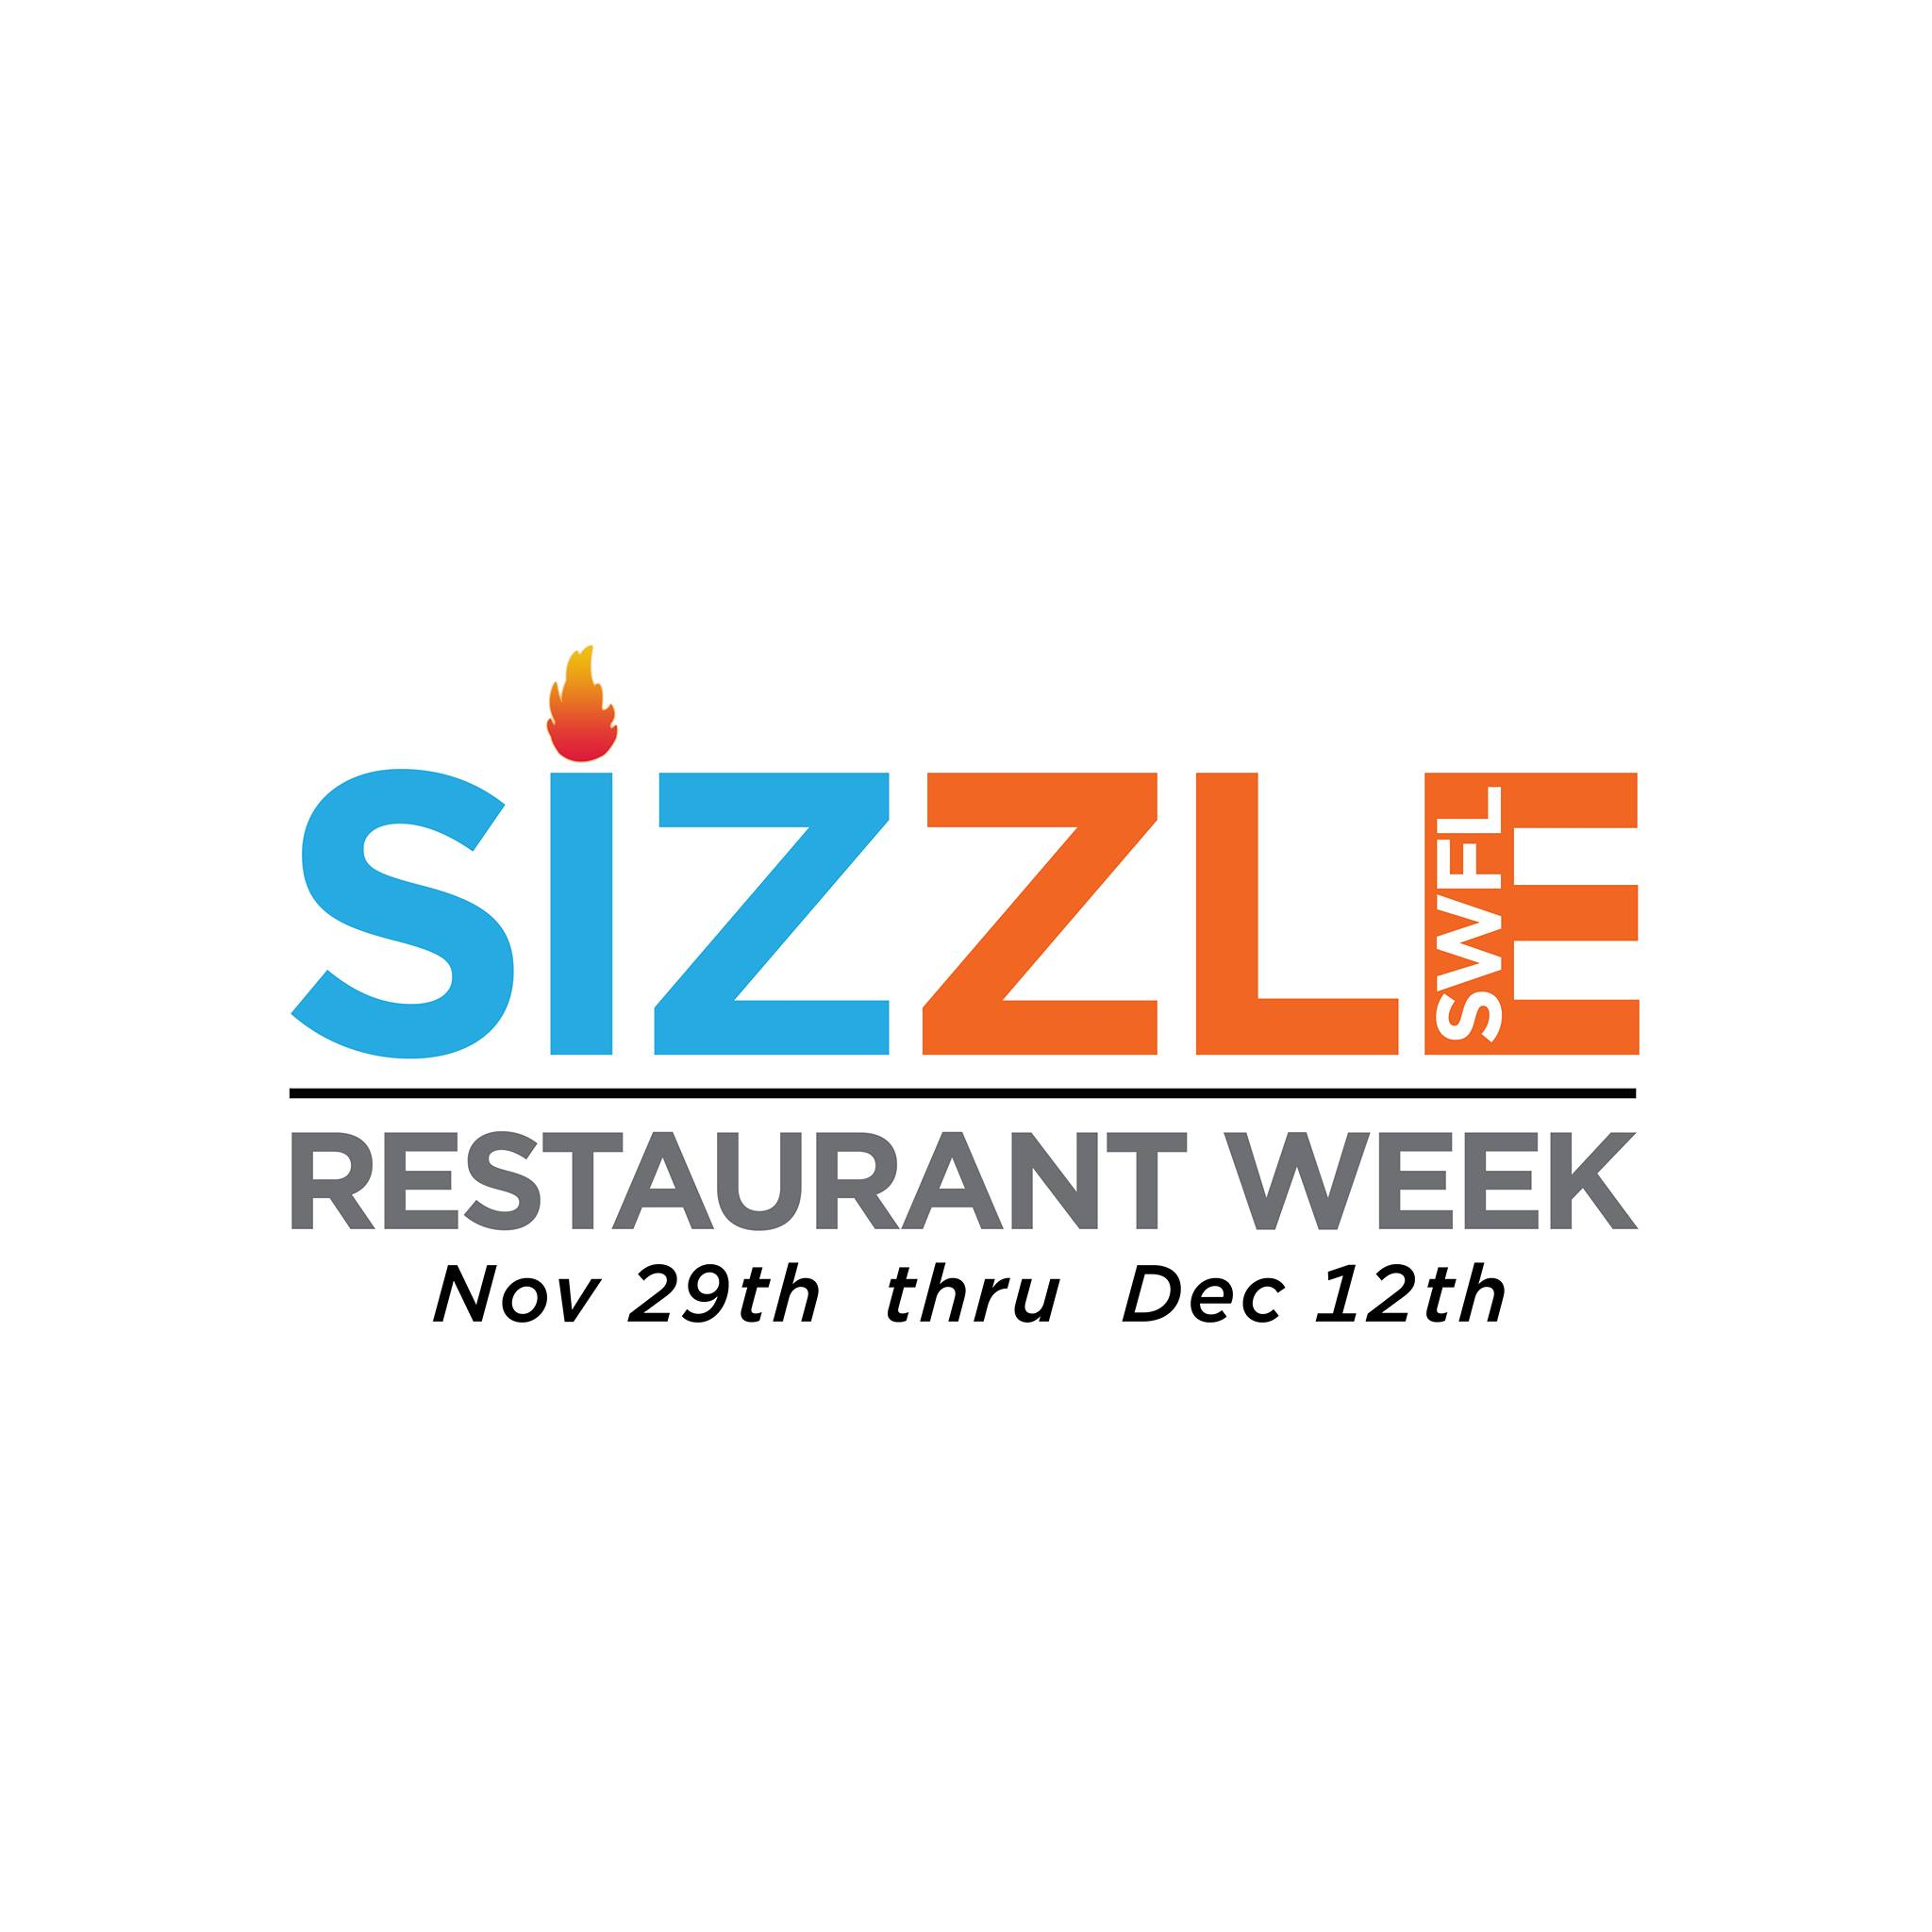 Sizzle SWFL Restaurant Week at The Village Shops on Venetian Bay